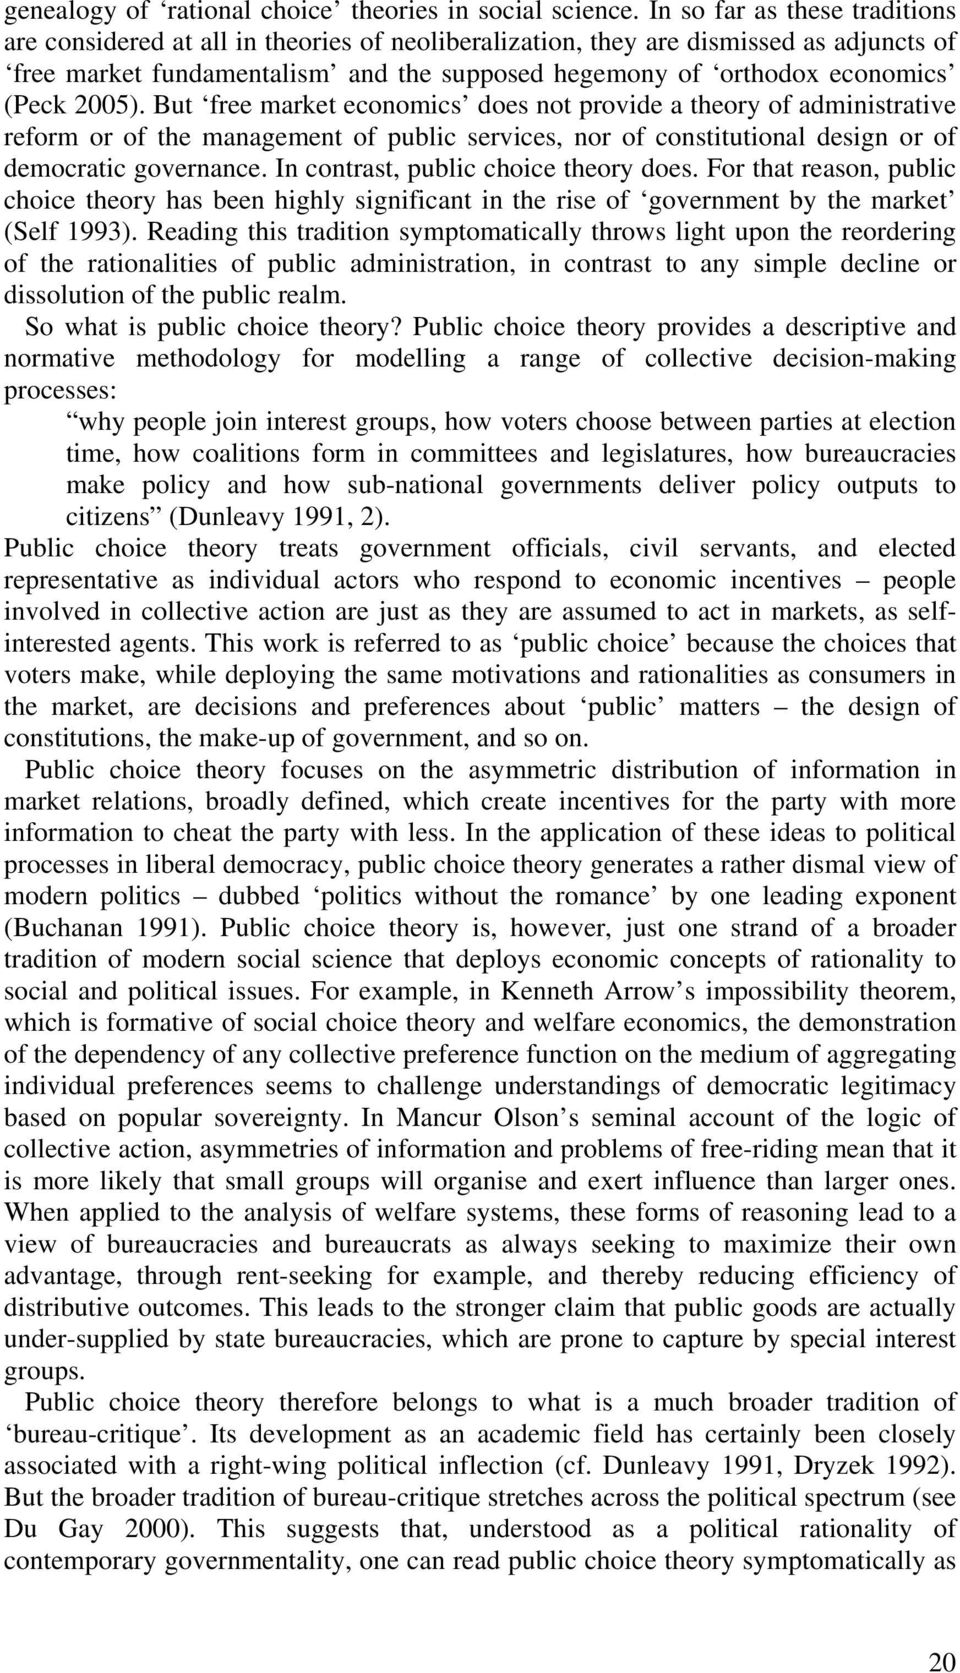 (Peck 2005). But free market economics does not provide a theory of administrative reform or of the management of public services, nor of constitutional design or of democratic governance.